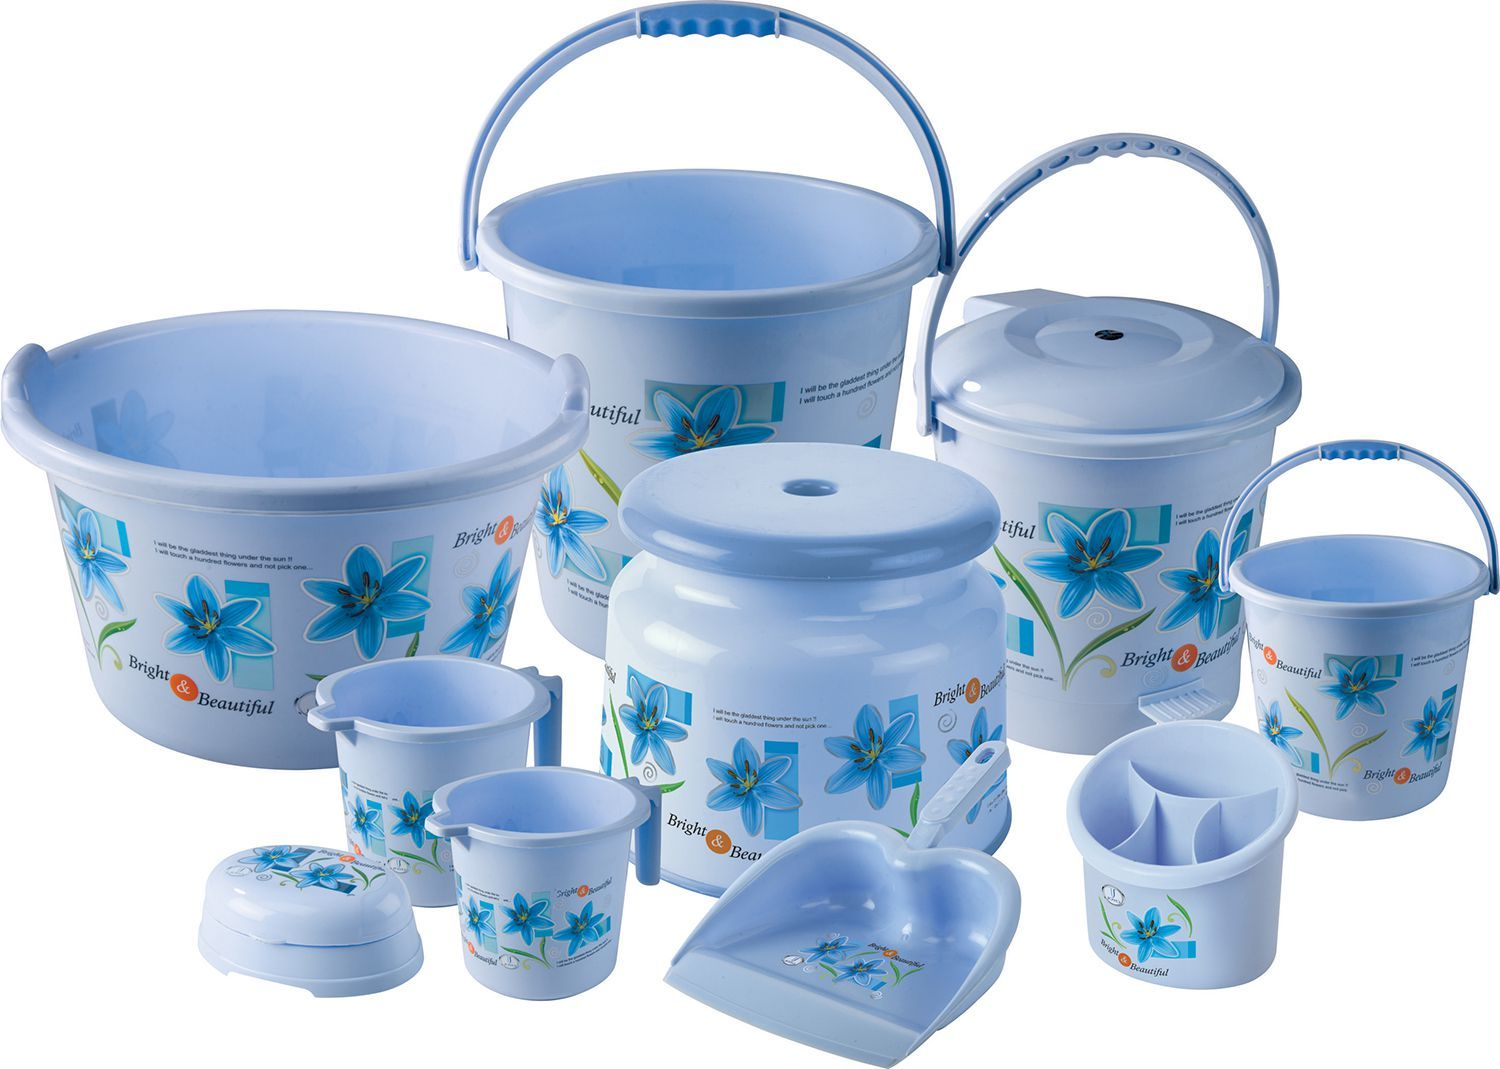 8 Piece Plastic Bathroom Set Online Here With Cod Couponndeal Bathroomset Bucketsetonline